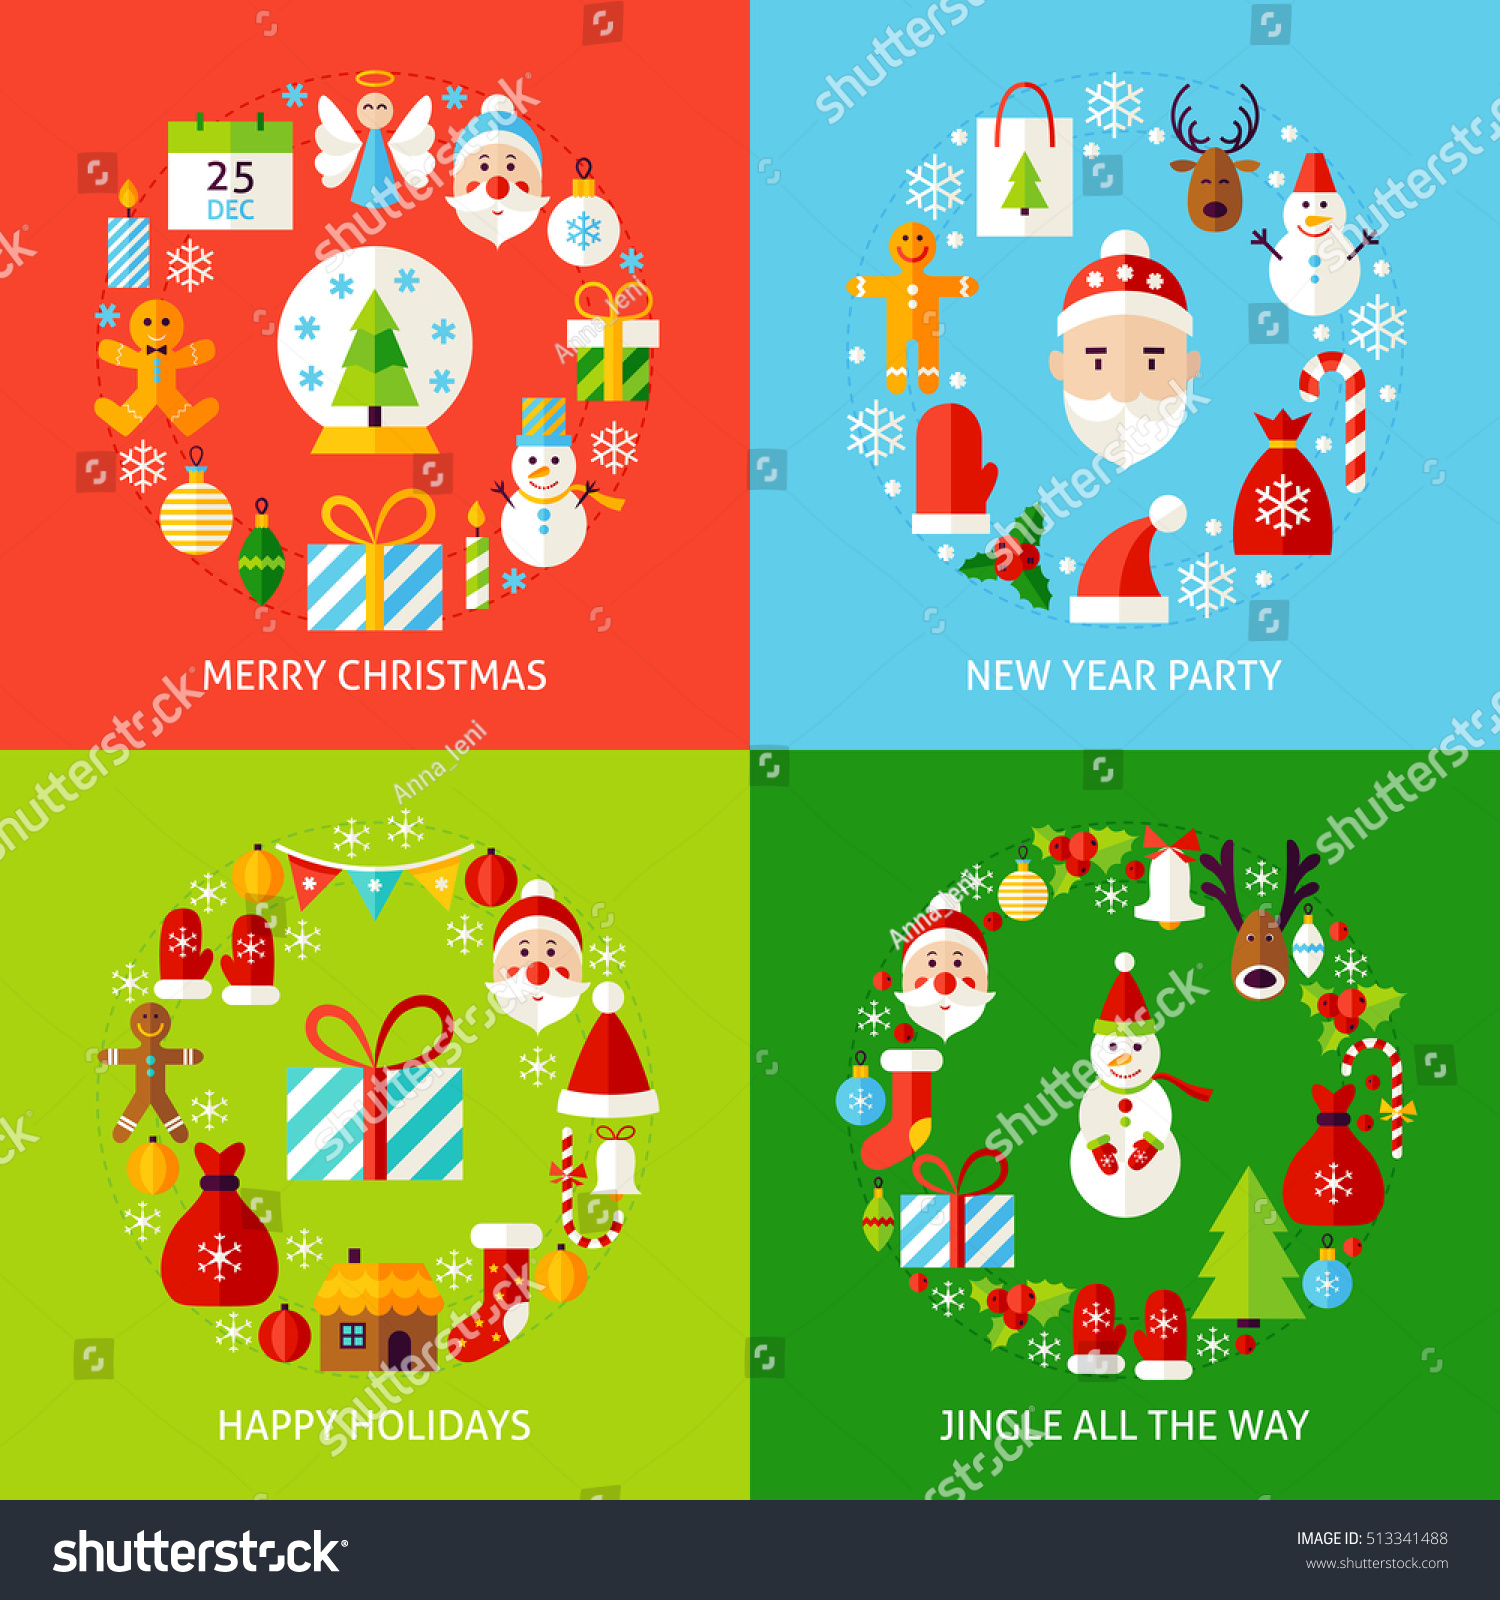 Merry Christmas Concepts Set Flat Design Vector Illustration Collection Of Winter Holiday Posters